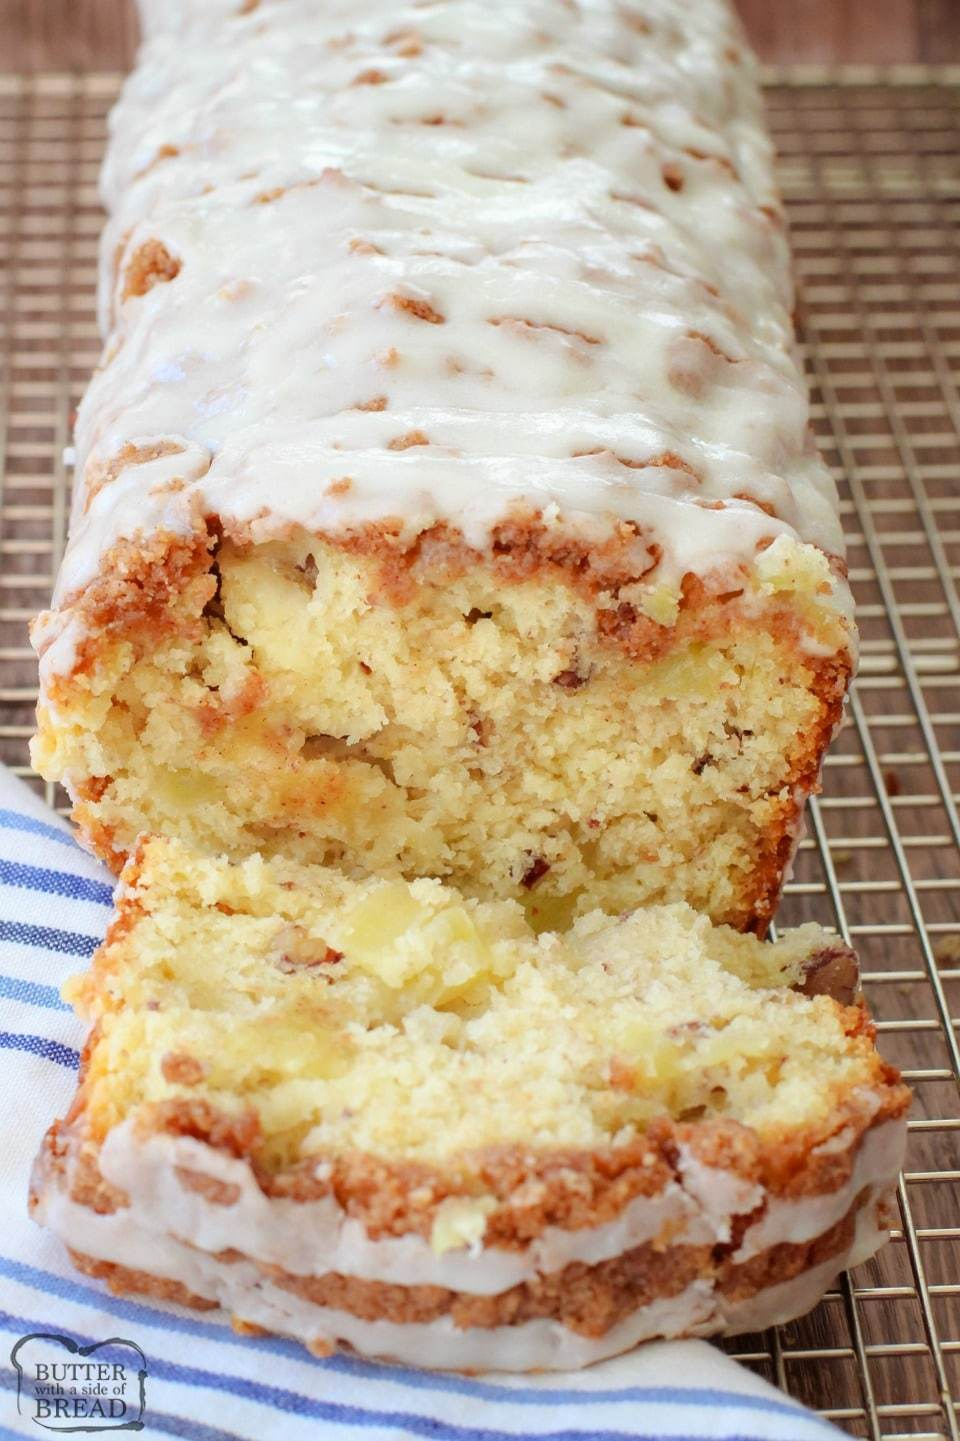 Dutch Apple Bread made from scratch with butter, sugar & fresh apples. Amazing flavor in this apple quick bread recipe topped with a cinnamon streusel & drizzled with warm vanilla glaze.